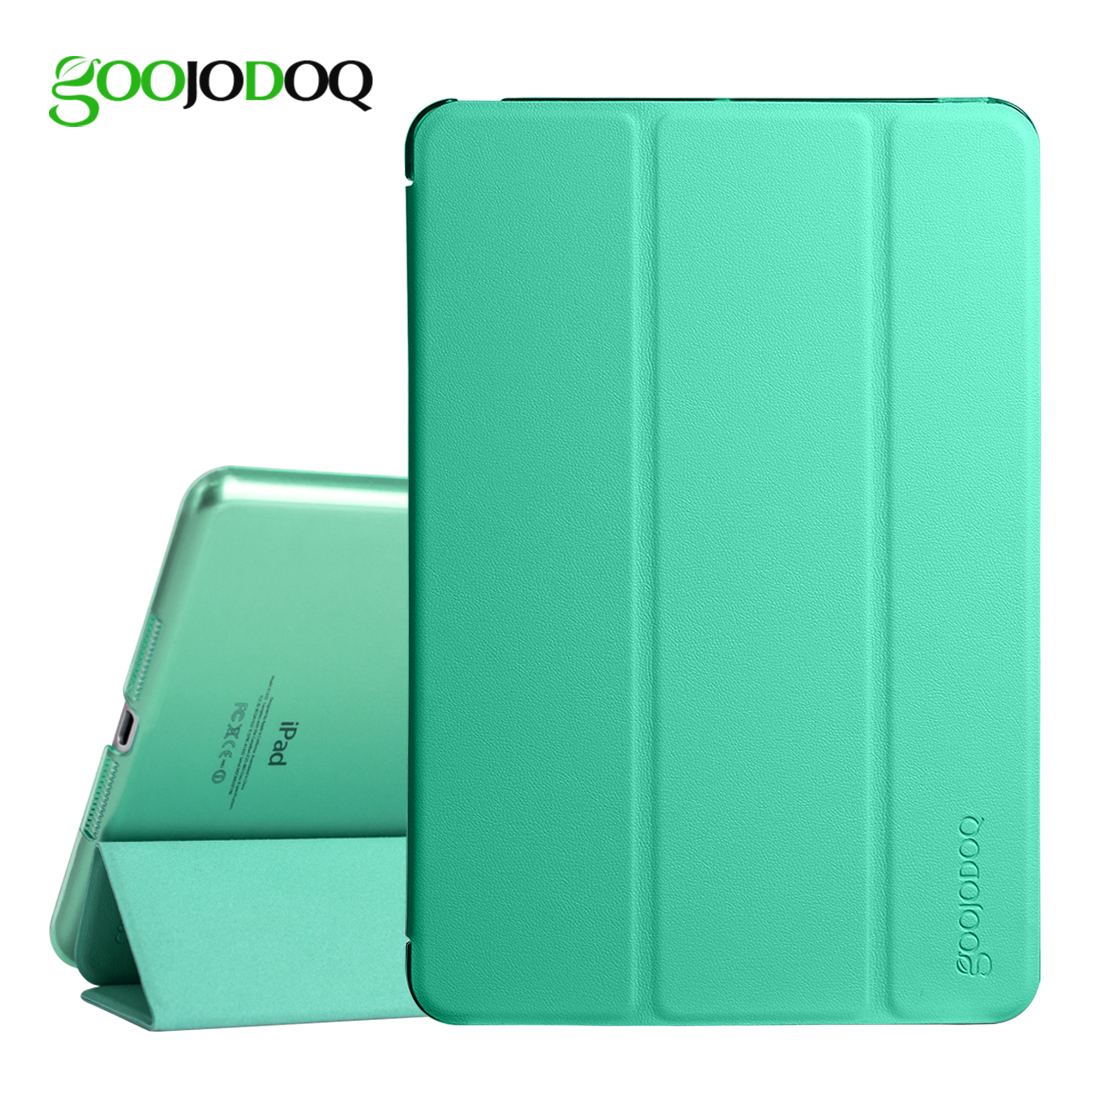 For Apple iPad Mini 4 Case,GOOJODOQ Slim PU Leather + Translucent PC Hard Back Smart Cover Case Shell for iPad Mini 4 Coque for ipad mini4 cover high quality soft tpu rubber back case for ipad mini 4 silicone back cover semi transparent case shell skin